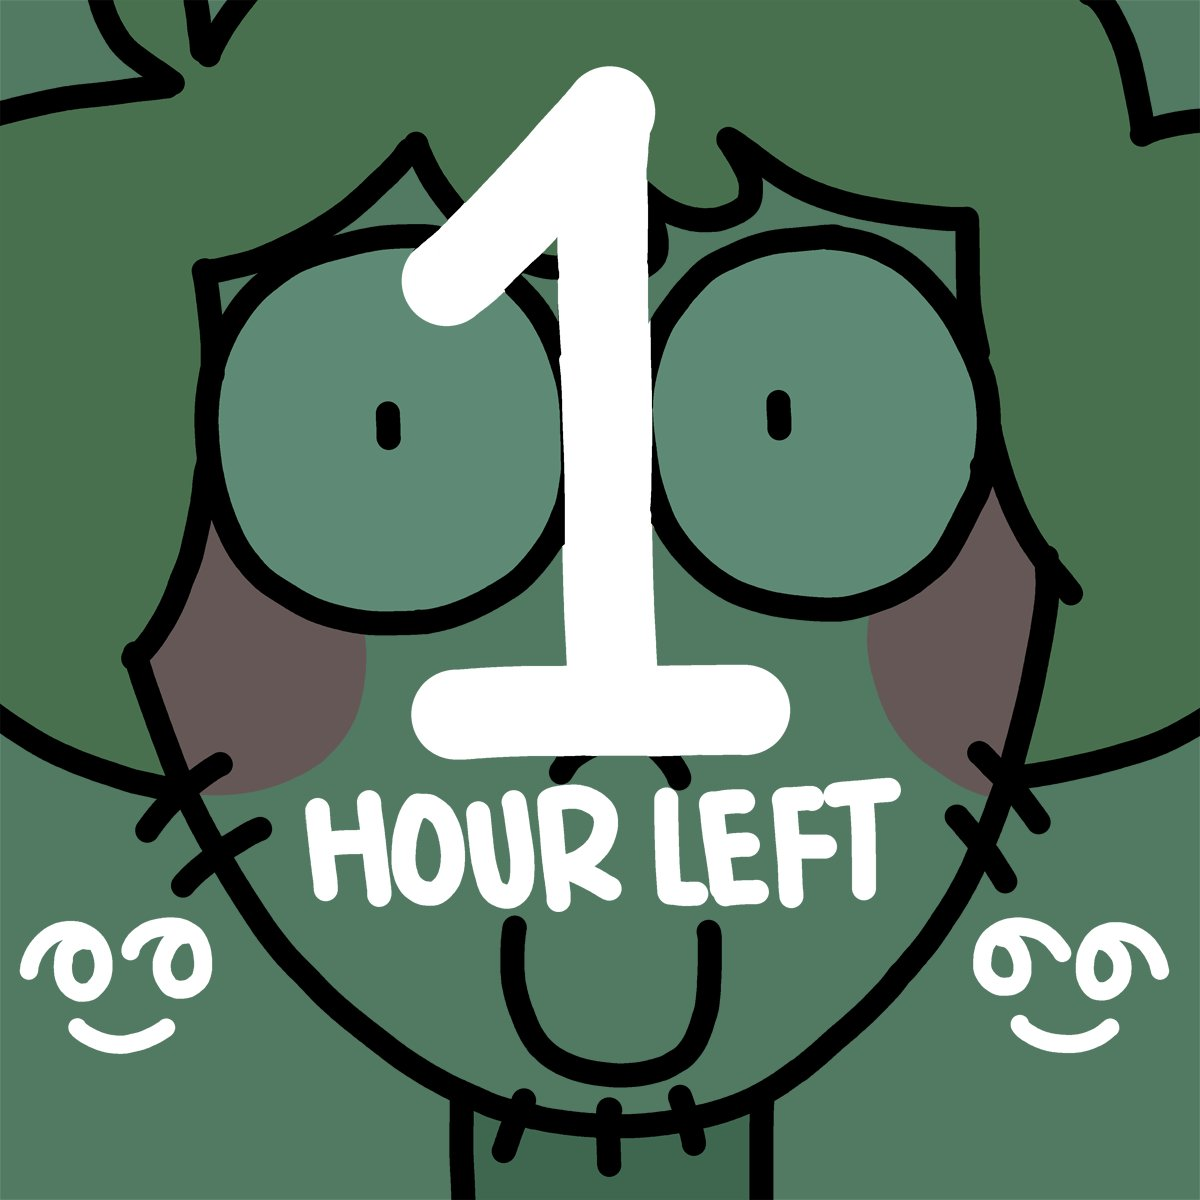 AN HOUR LEFT. ⏱️ WE'RE IN THE 'MINUTES ZONE' BABEY kickstarter.com/projects/drink…